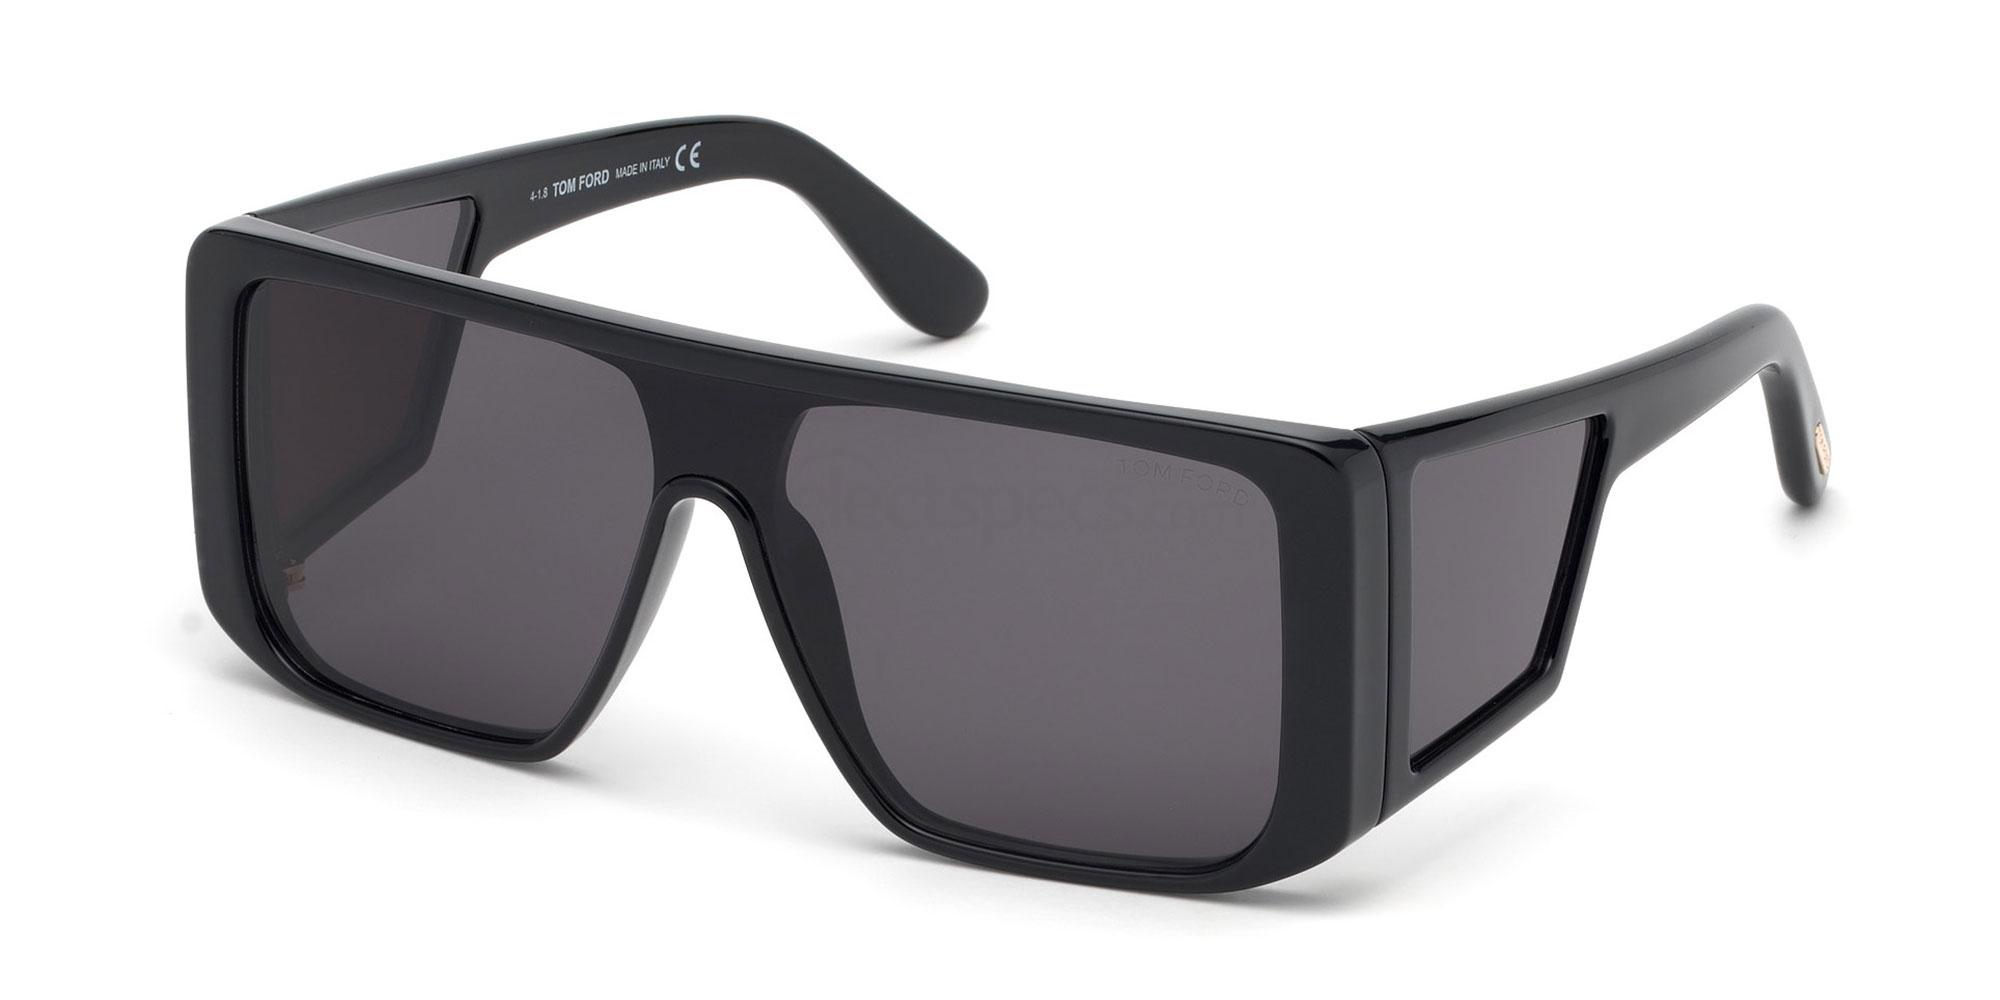 01A FT0710 Sunglasses, Tom Ford